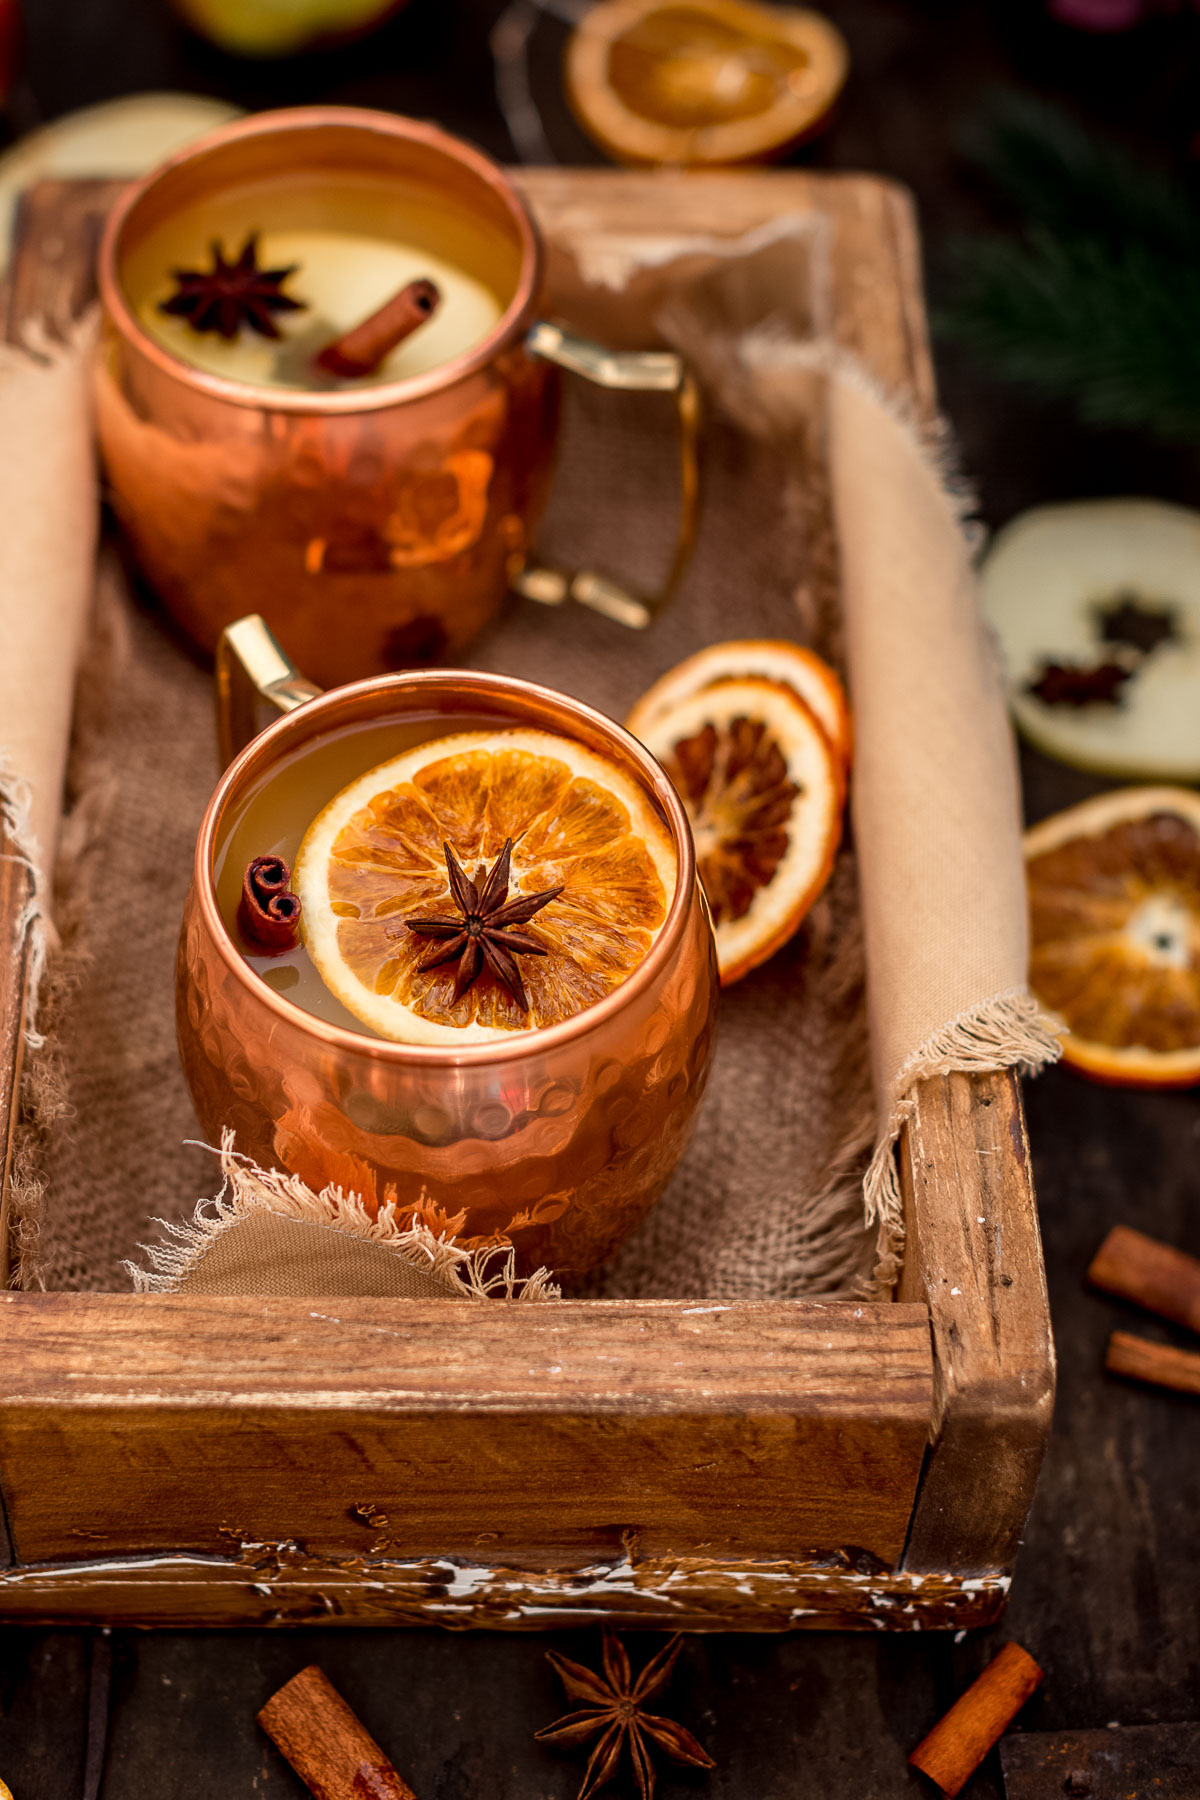 Healthy APPLE MULLED WINE recipe Ricetta VIN BRULE di MELE fatto in casa analcolico Apfelglühwein for Christmas